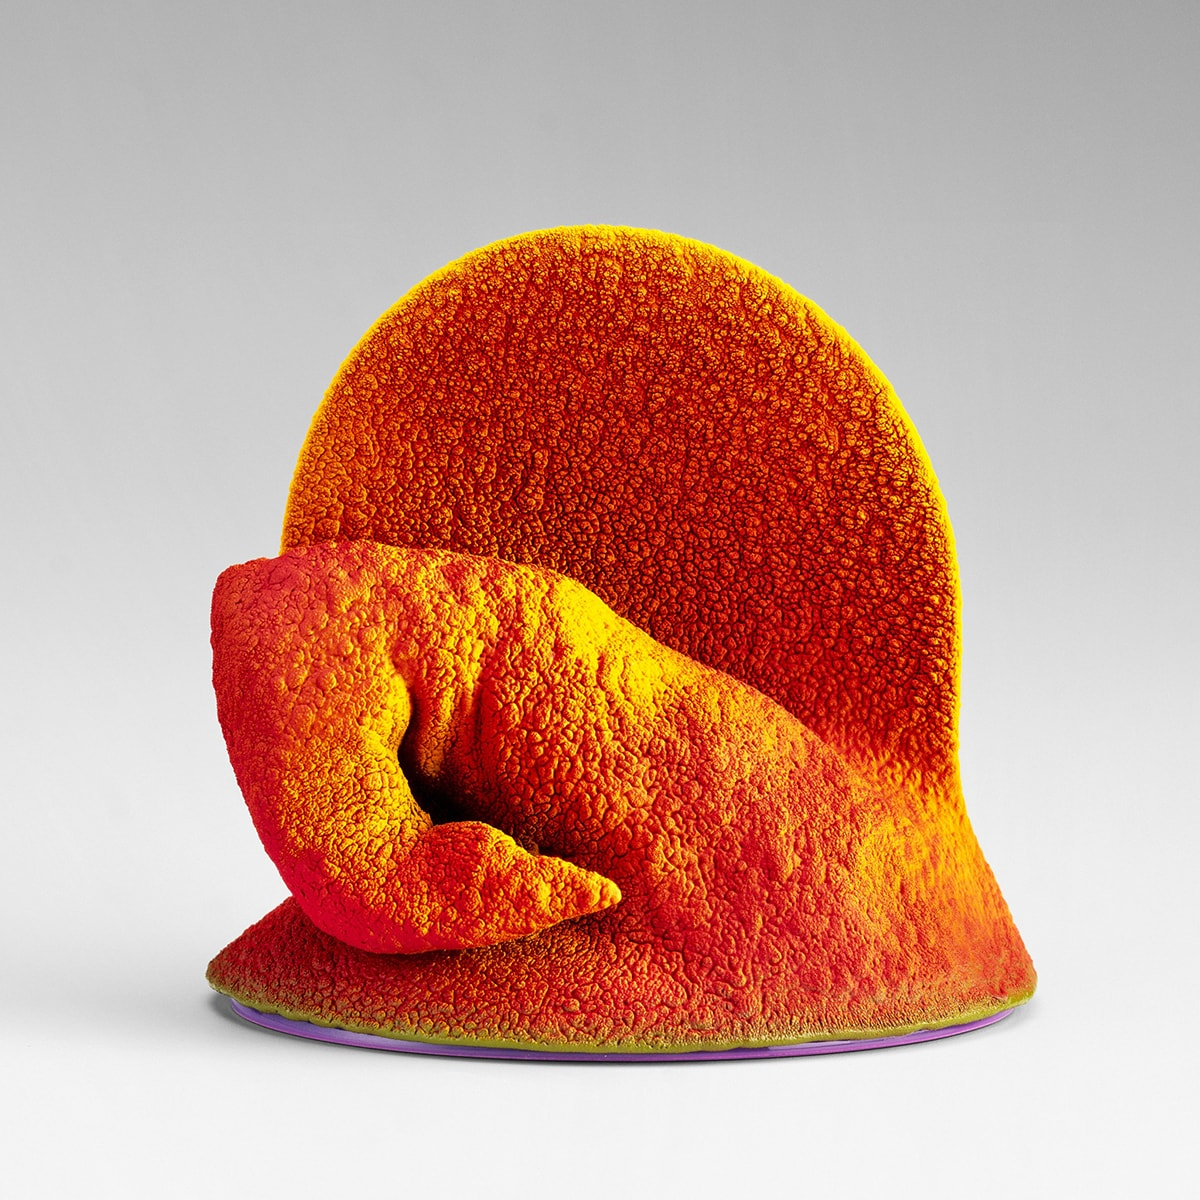 """Image description: Fortgang, Ron Nagle, 4 ¾ x 4 ¾ x 4 inches, earthenware with overglaze. A small, bright orange sculpture featuring a circular """"fin"""" behind a curled, finger-like appendage. The fin stands about twice as high as the crooked finger that ends in a point. The appendage appears to have several joints like a human finger with folds or wrinkles where it bends. The base widens slightly and appears rounded. The rough, craggy surface of the sculpture shows lighter highlights amid the deeper orange shadows."""